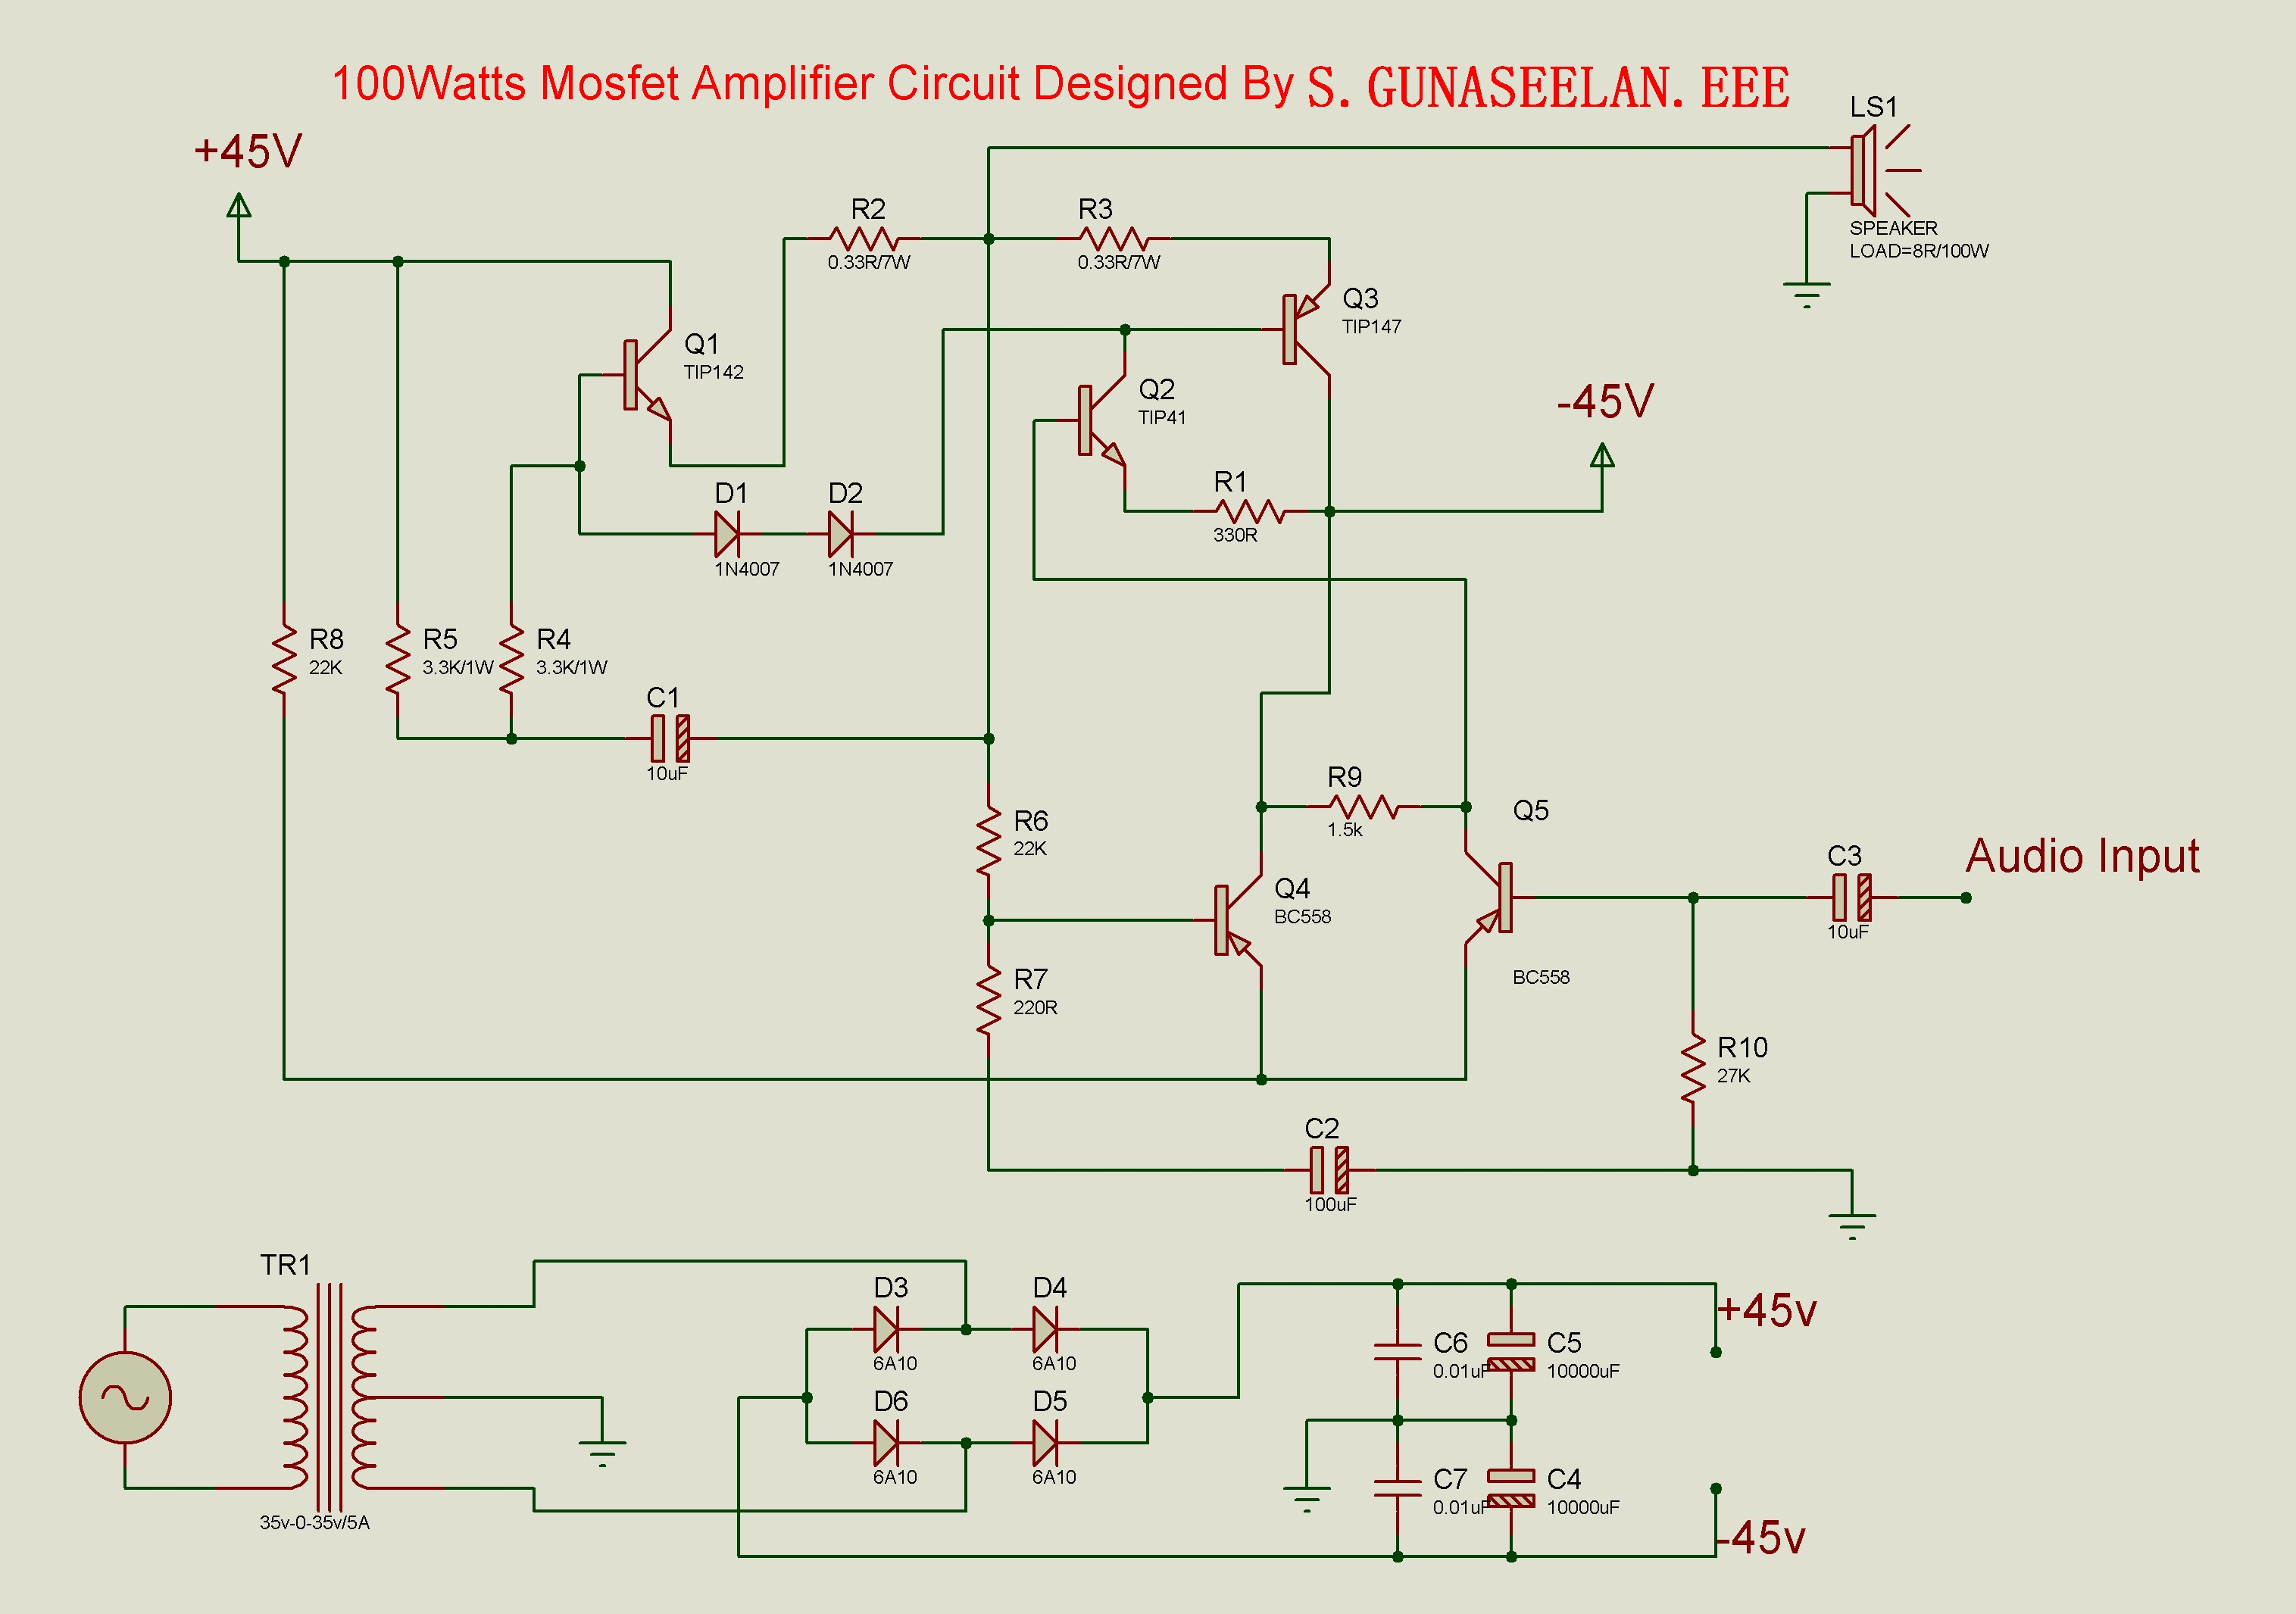 Gunacircuits Transistor Amplifier Circuit Design Schematic Diagram This Is The Cheapest 150 Watt You Can Makei Thinkbased On Two Darlington Power Transistors